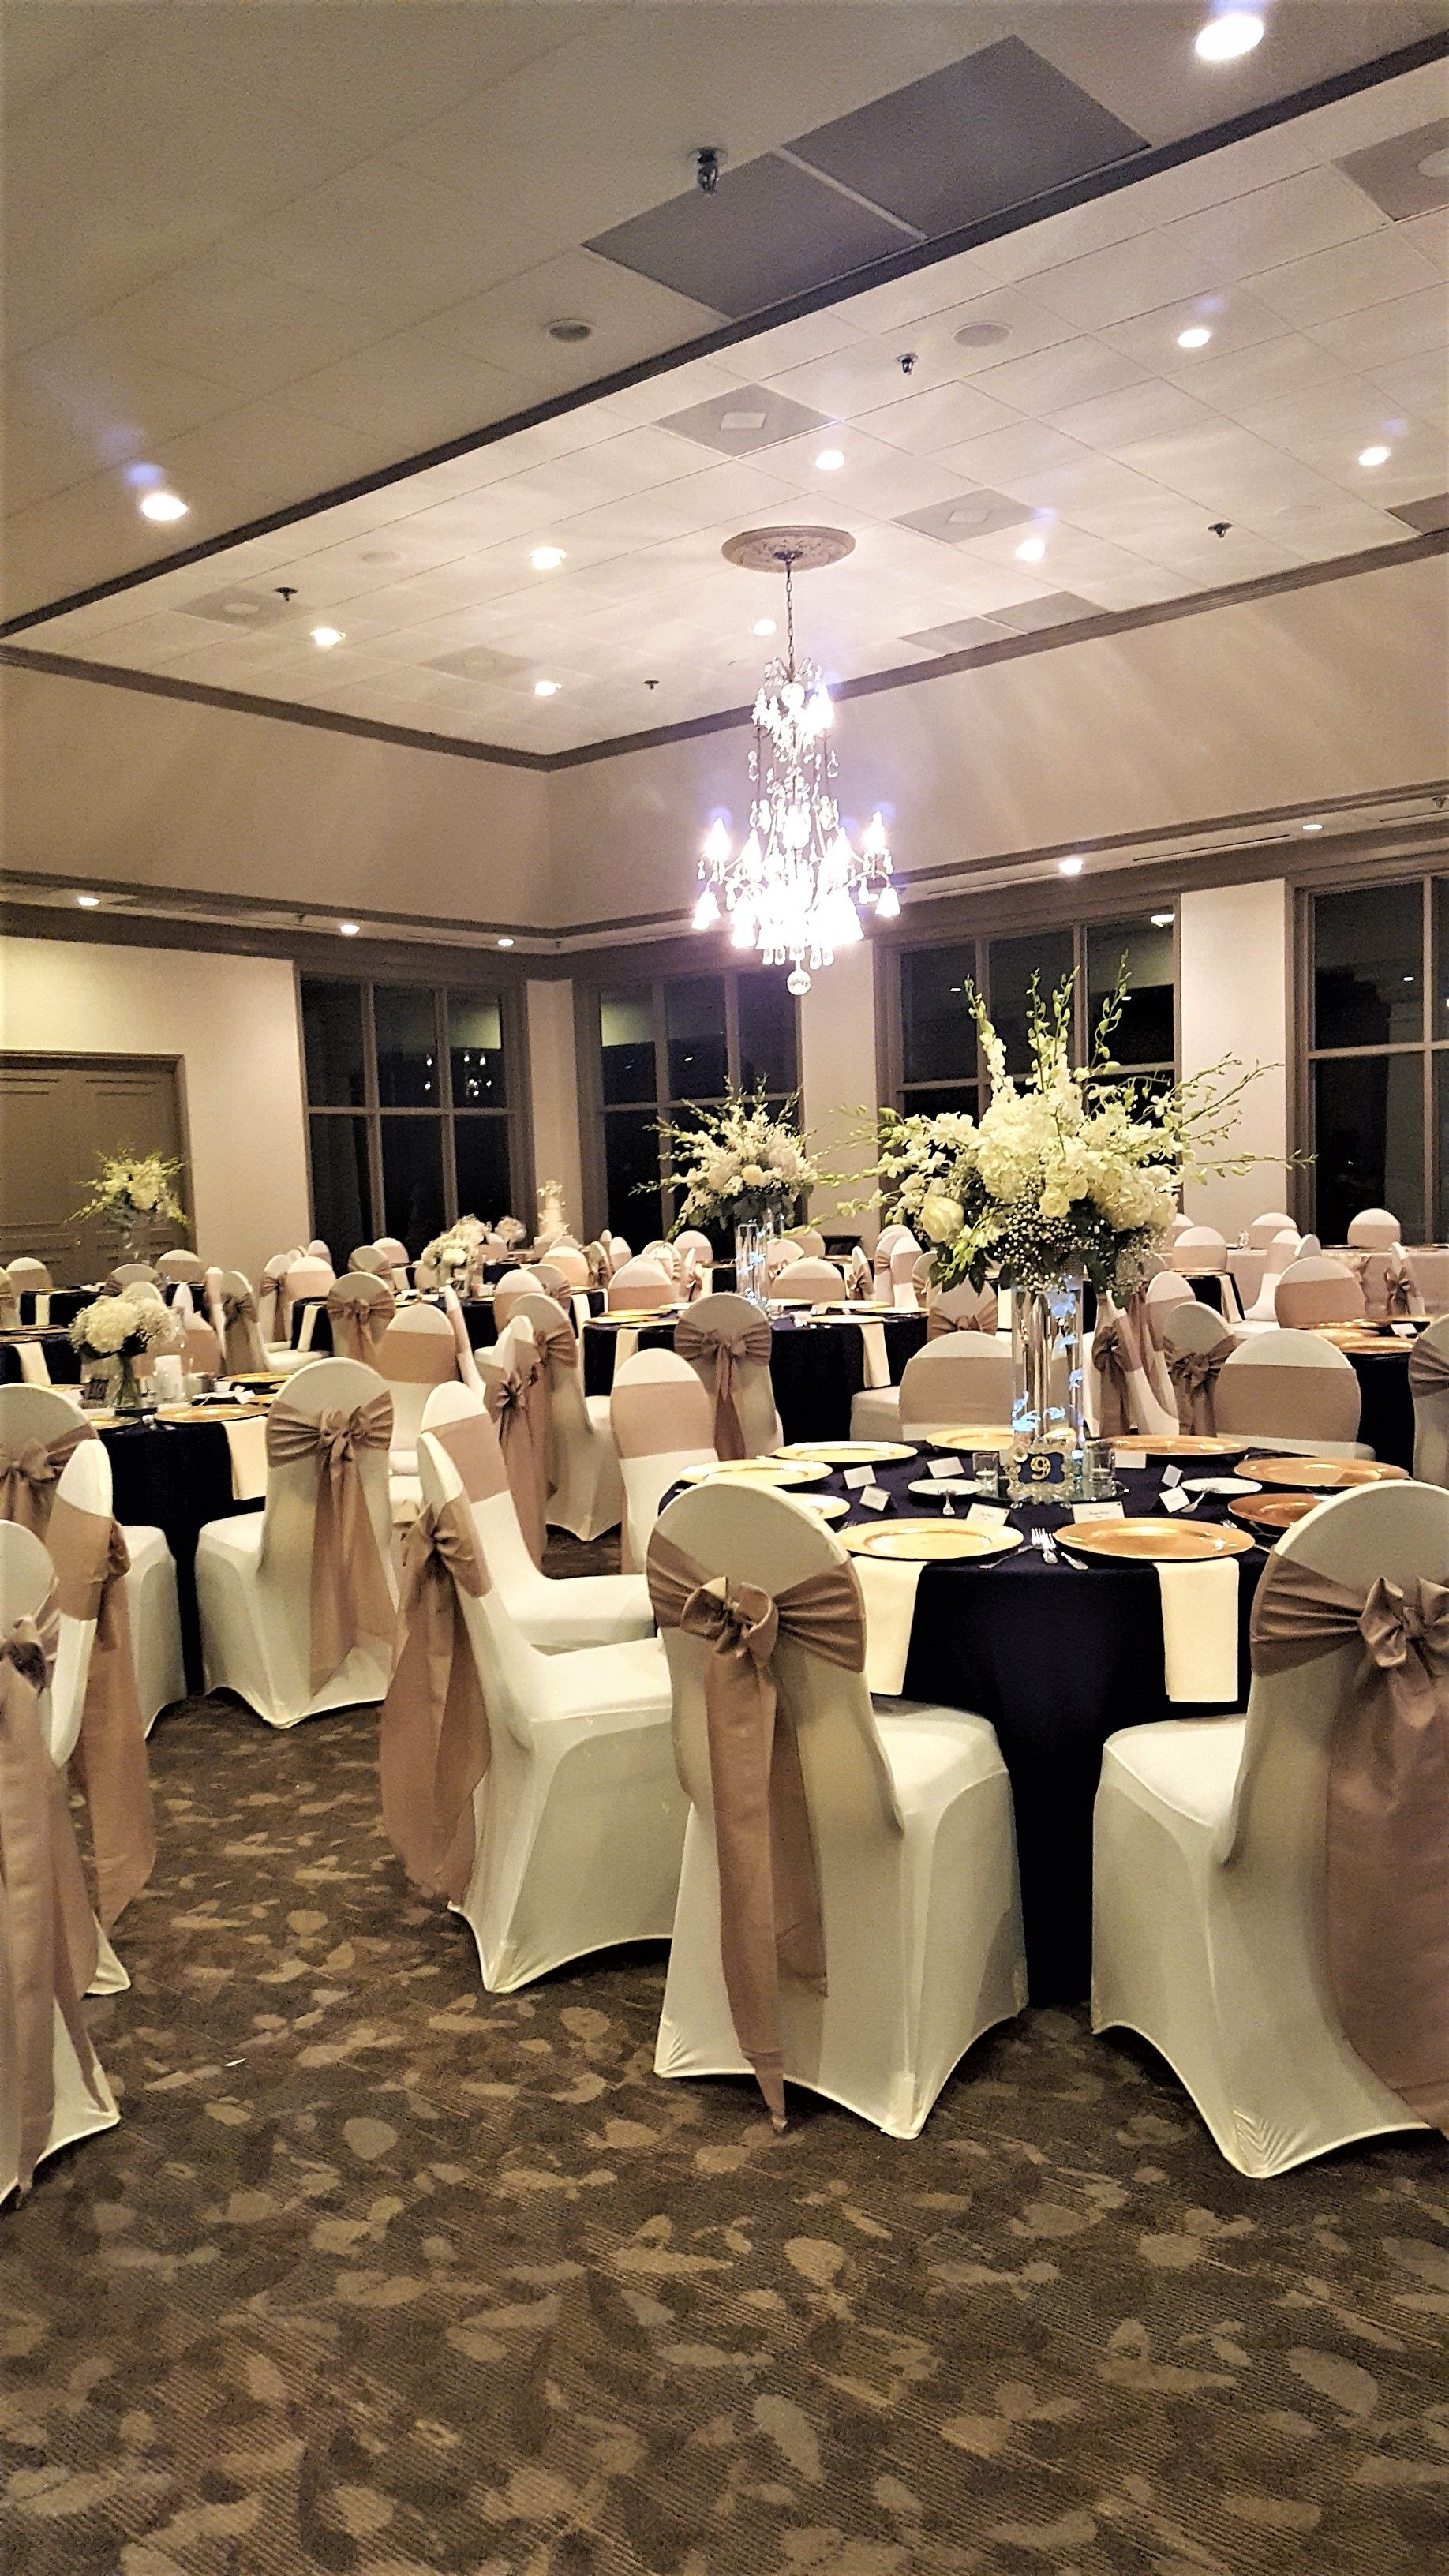 Wedding Reception With Ivory Spandex Chair Covers Gold Sashes Black Linens In The Ballroom